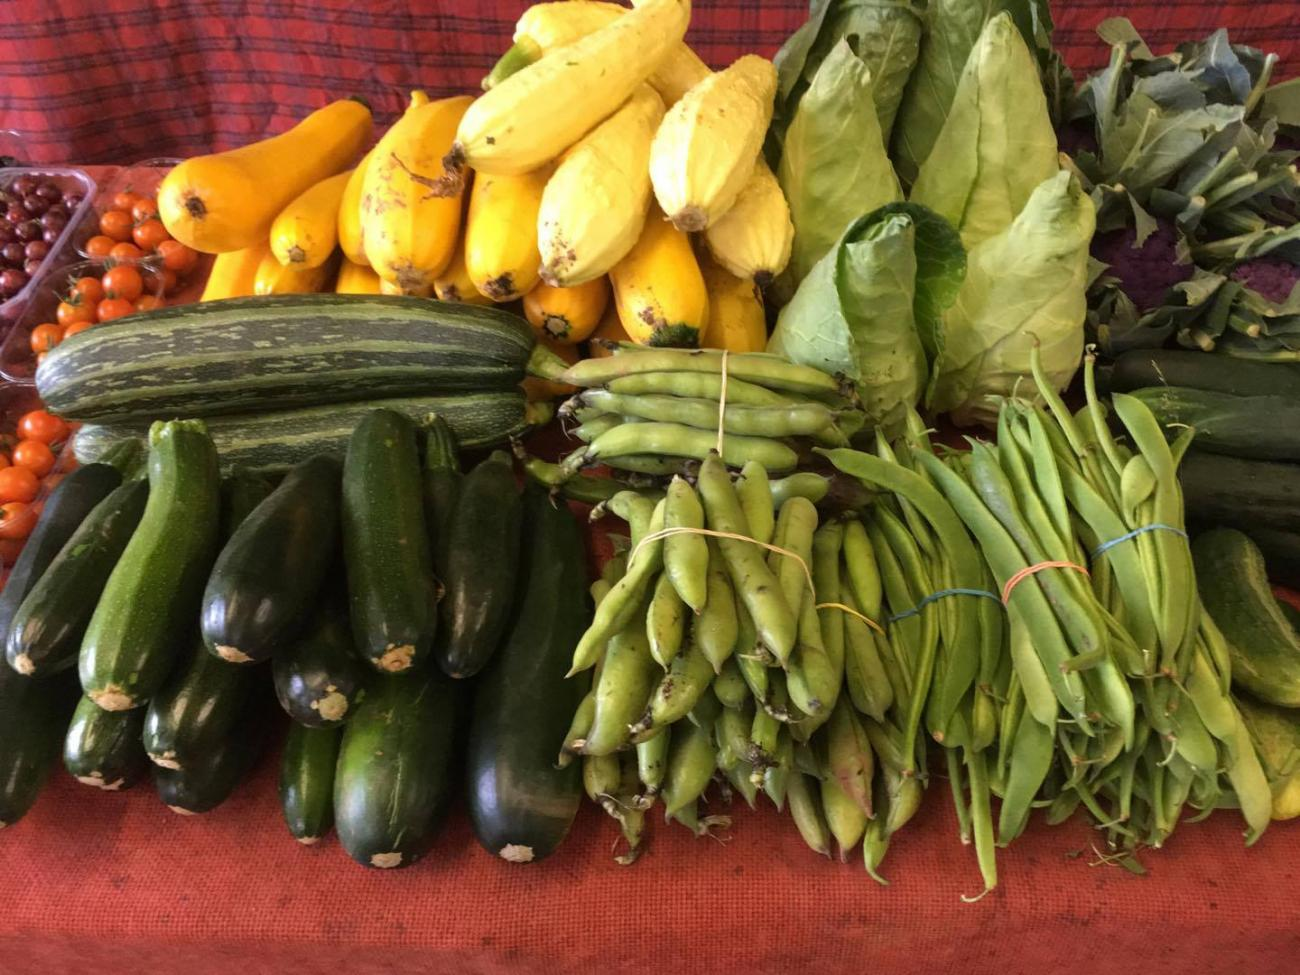 Selection of Vegetables at the market